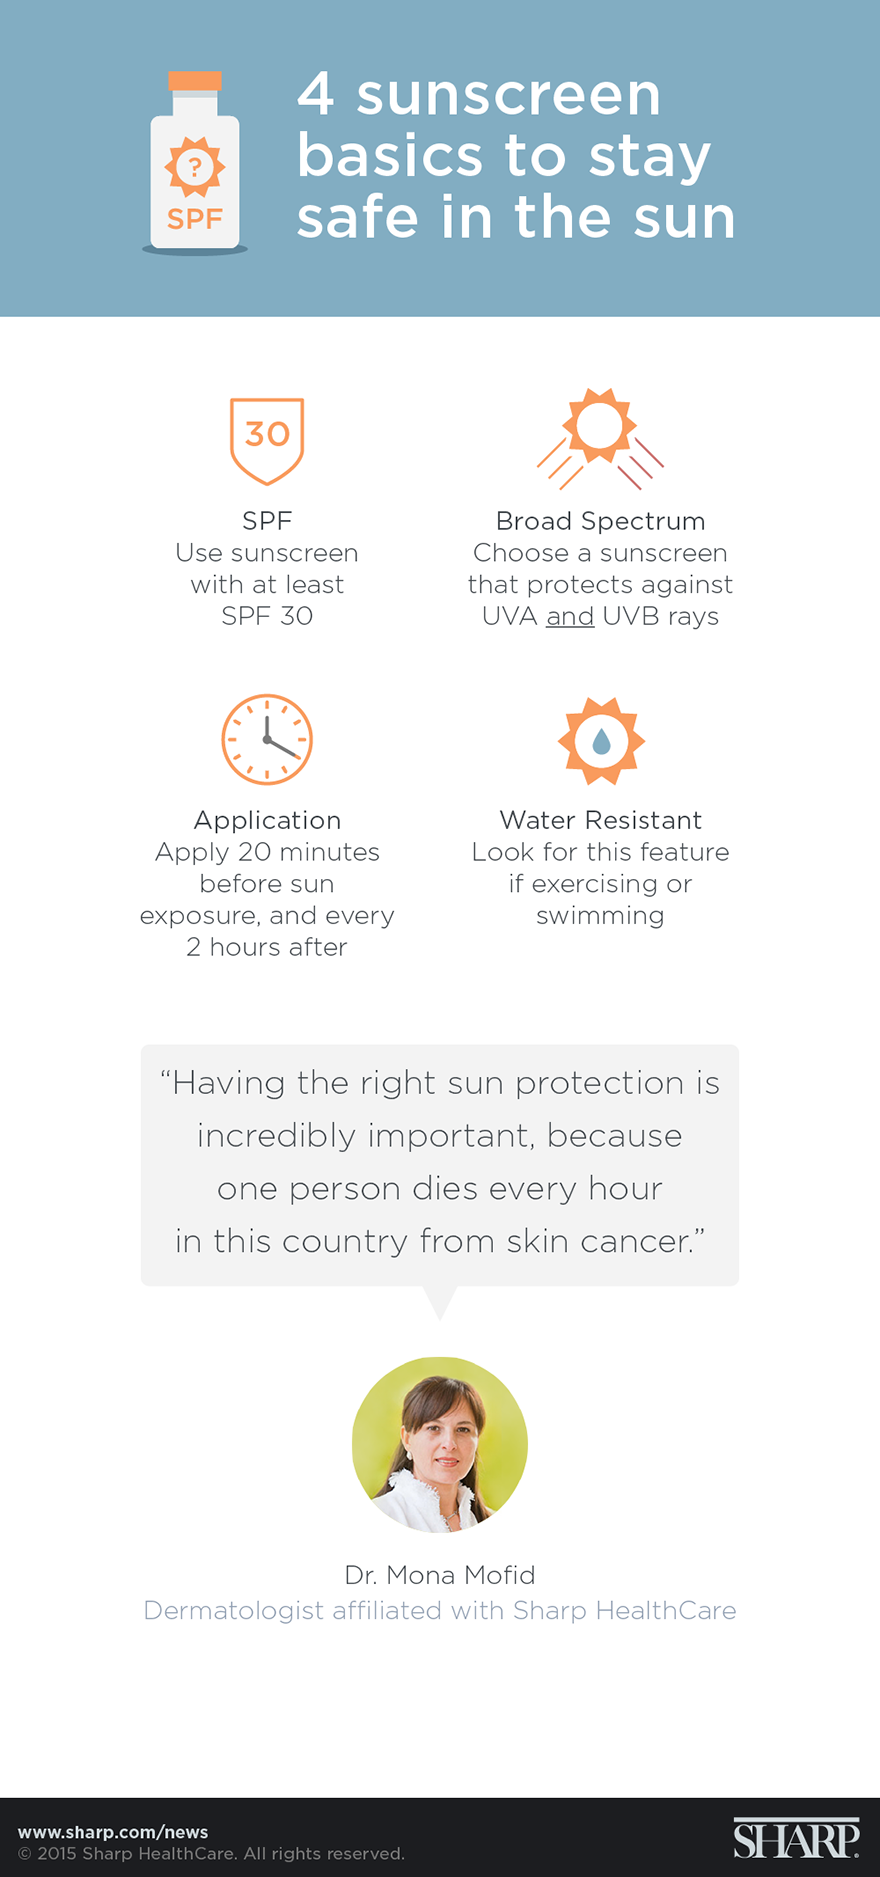 4 sunscreen tips for sun safety (infographic). 4 sunscreen basics to stay safe in the sun. According to Dr. Mona Mofid, a dermatologist affiliated with Sharp HealthCare, having the right sun protection is incredibly important, because one person dies every hour in this country from skin cancer. Dr. Mofid shares four sunscreen tips to stay safe in the sun: SPF – Use sunscreen with at least SPF 30. Broad spectrum – Choose a sunscreen that protects against UVA and UVB rays. Application – Apply sunscreen 20 minutes before sun exposure, and every two hours after. Water resistant – Look for this feature if exercising or swimming.